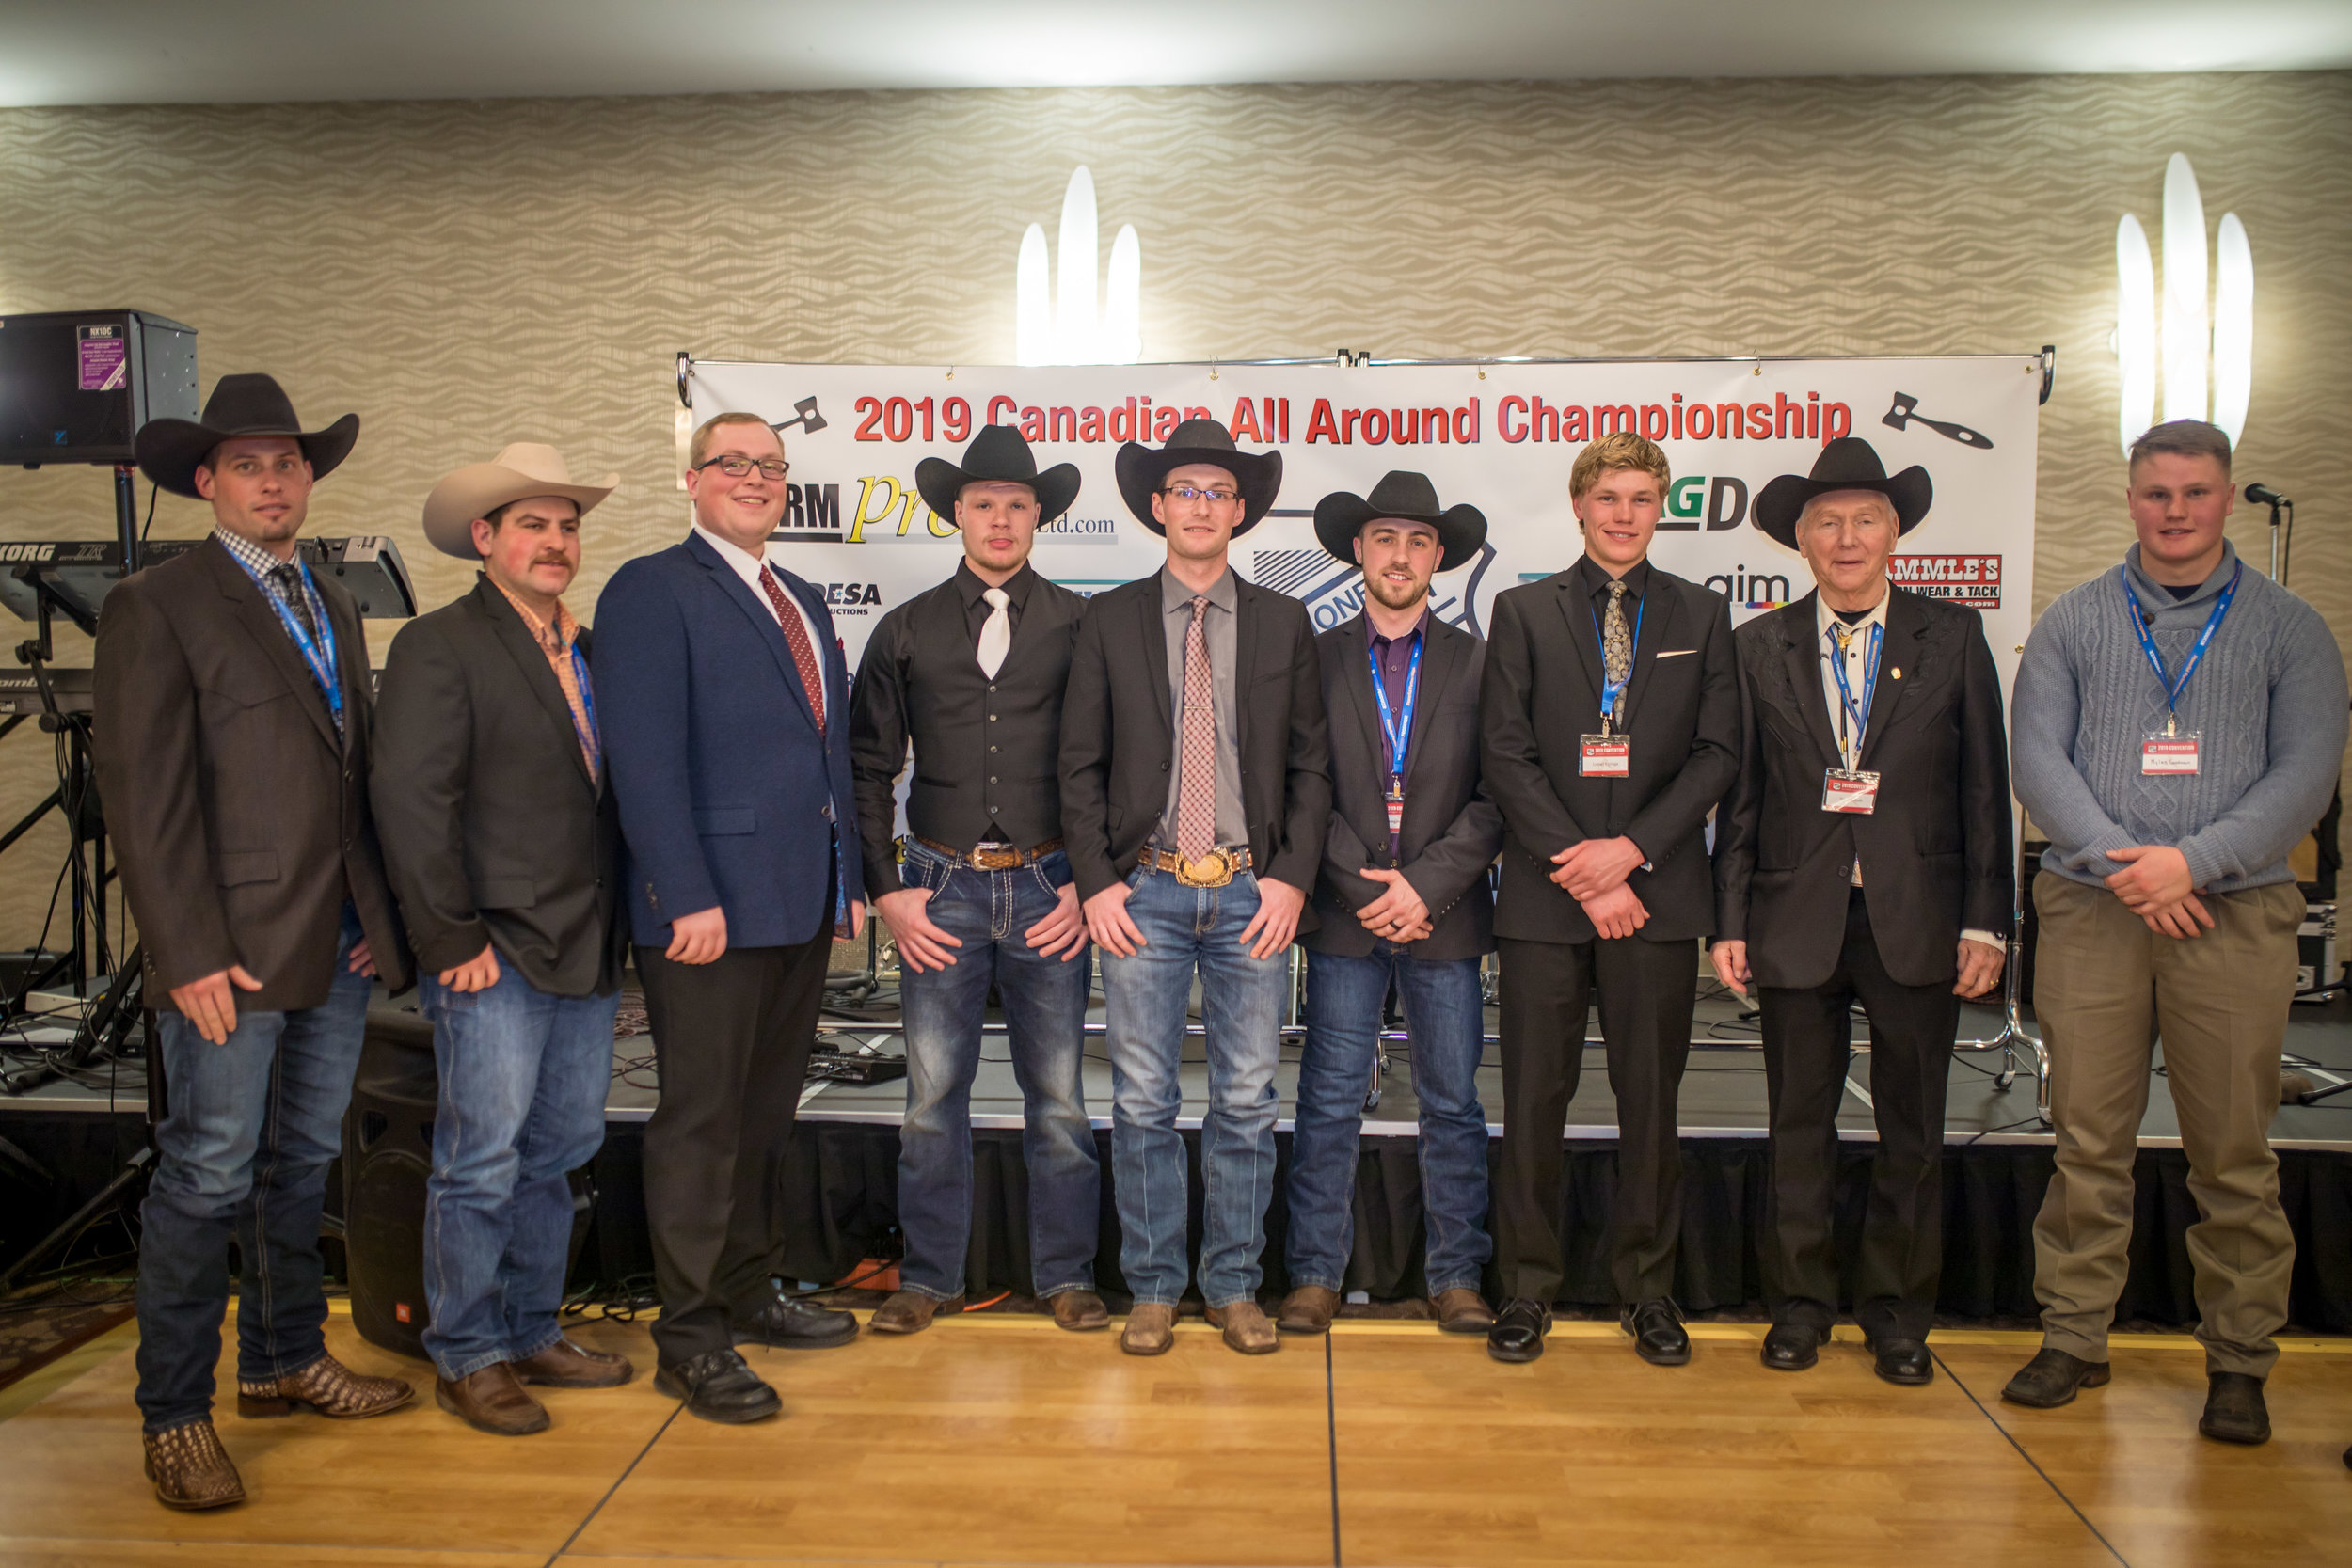 2019 02-02 Alberta Auctioneer Convention Day 03 - Calgary 25.jpg